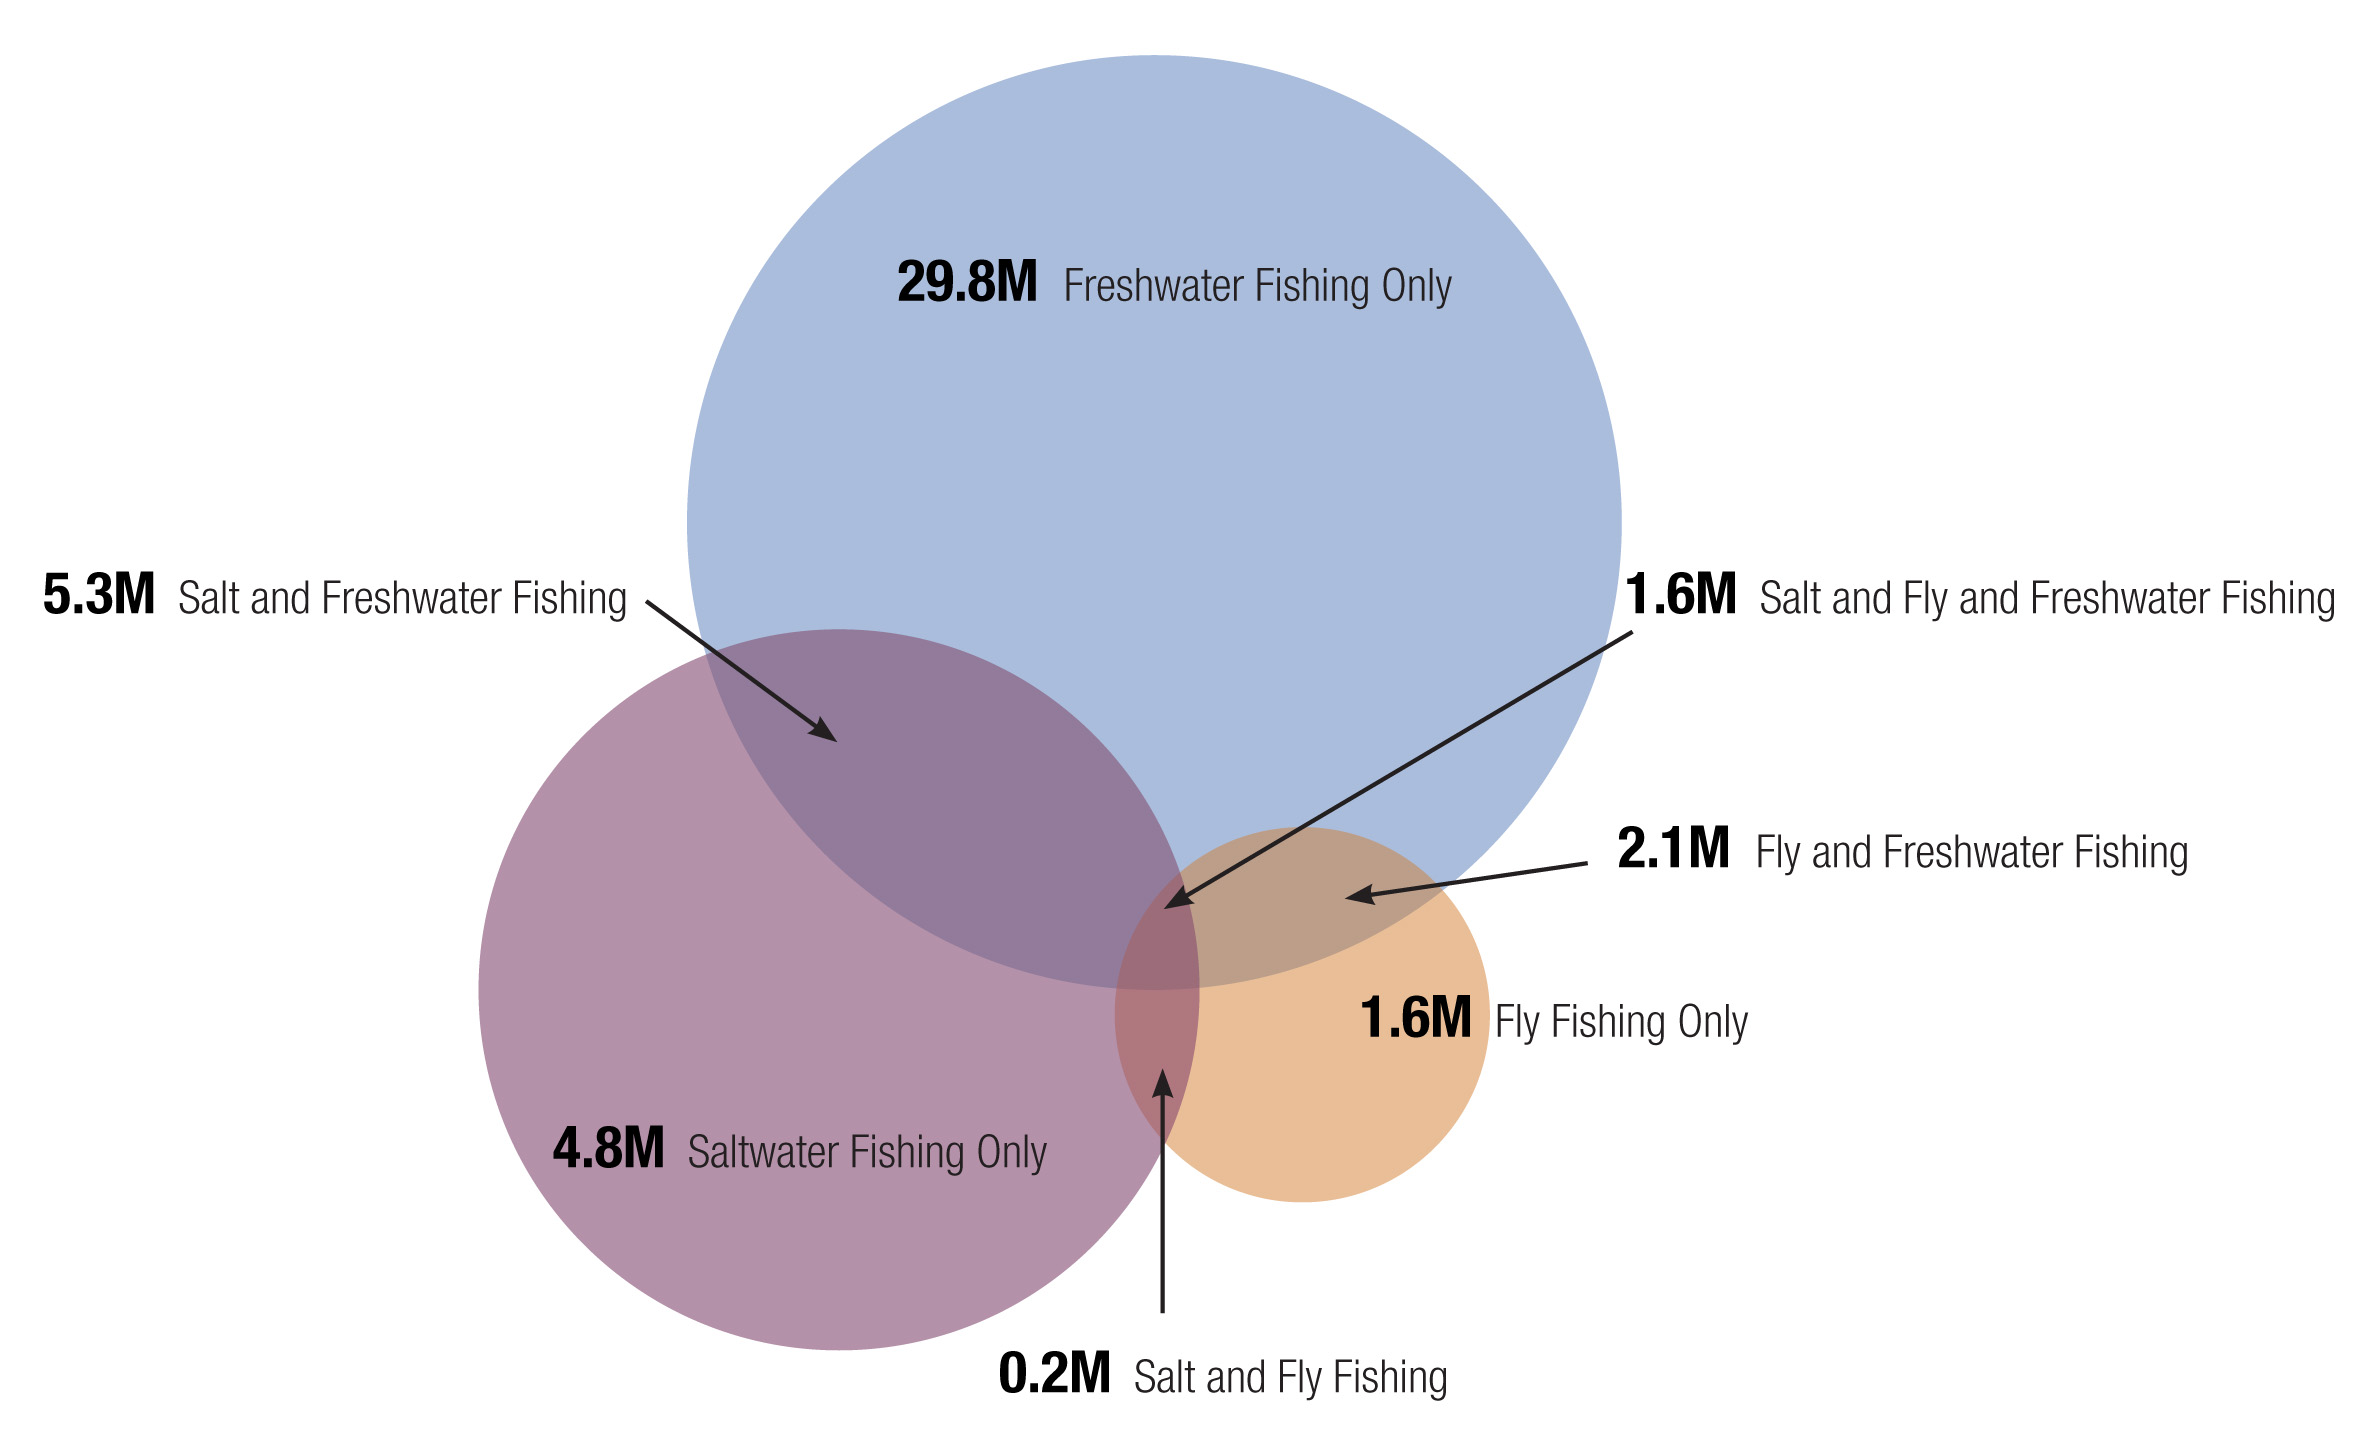 Where do you fit into this survey of fishing participation provided by the Outdoor Foundation?  If